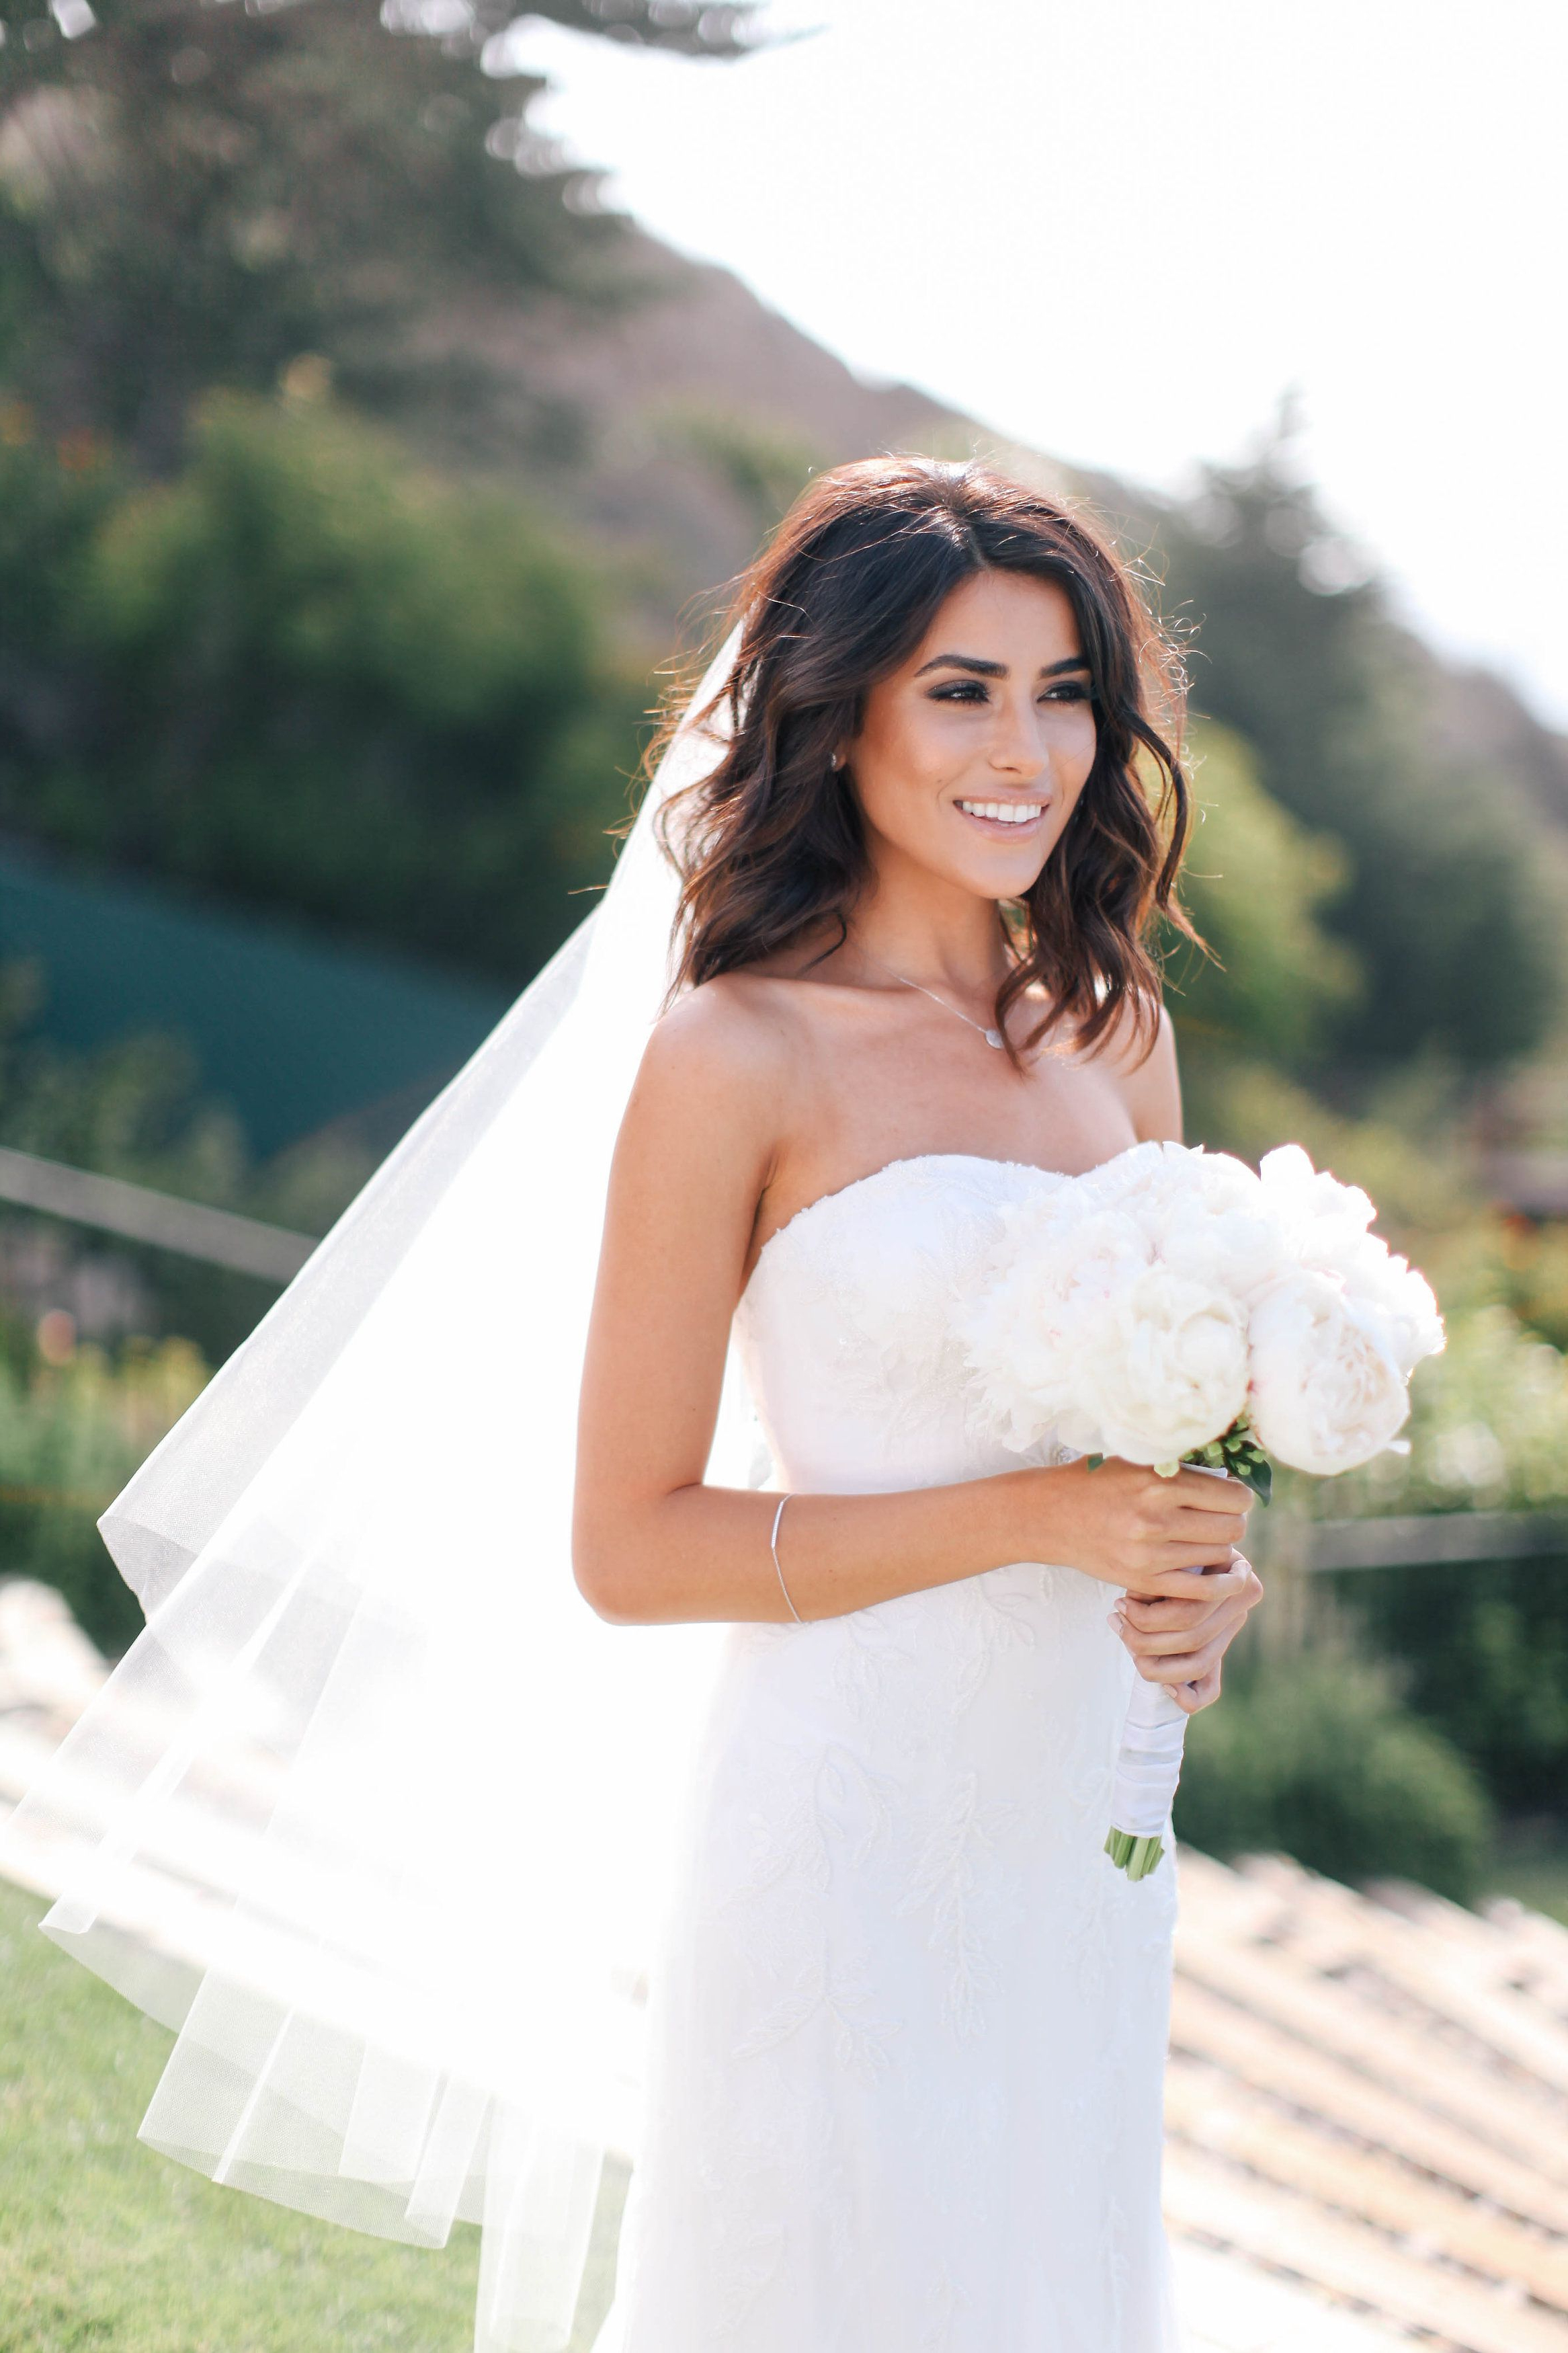 Beautiful Bride Sazan! | Wedded Bliss | Pinterest | Wedding With Regard To Hairstyles For Brides With Short Hair (View 22 of 25)